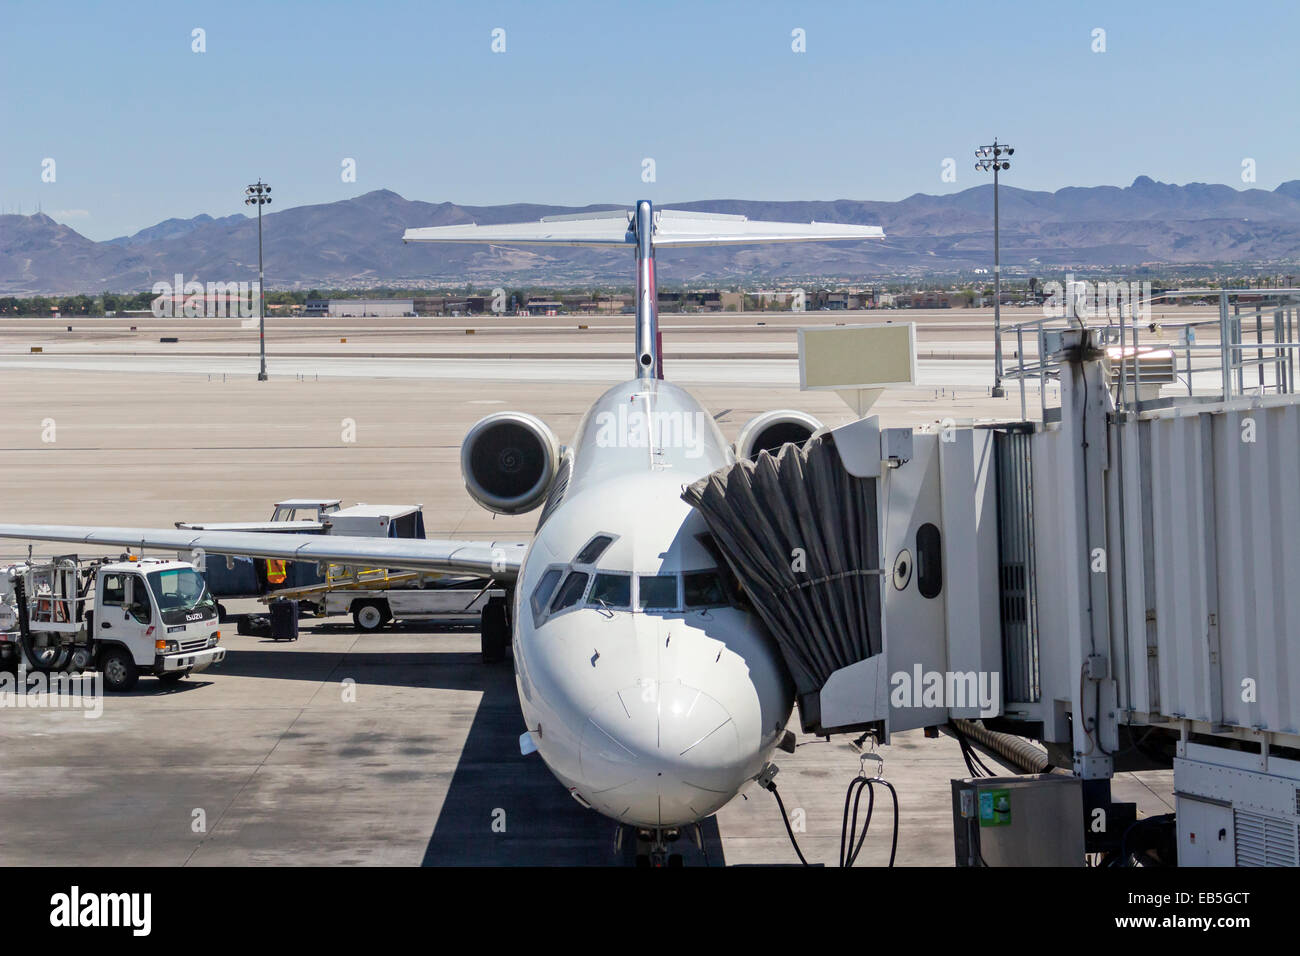 A commercial jet preparing for flight at the Las Vegas, Nevada McCarran airport. - Stock Image